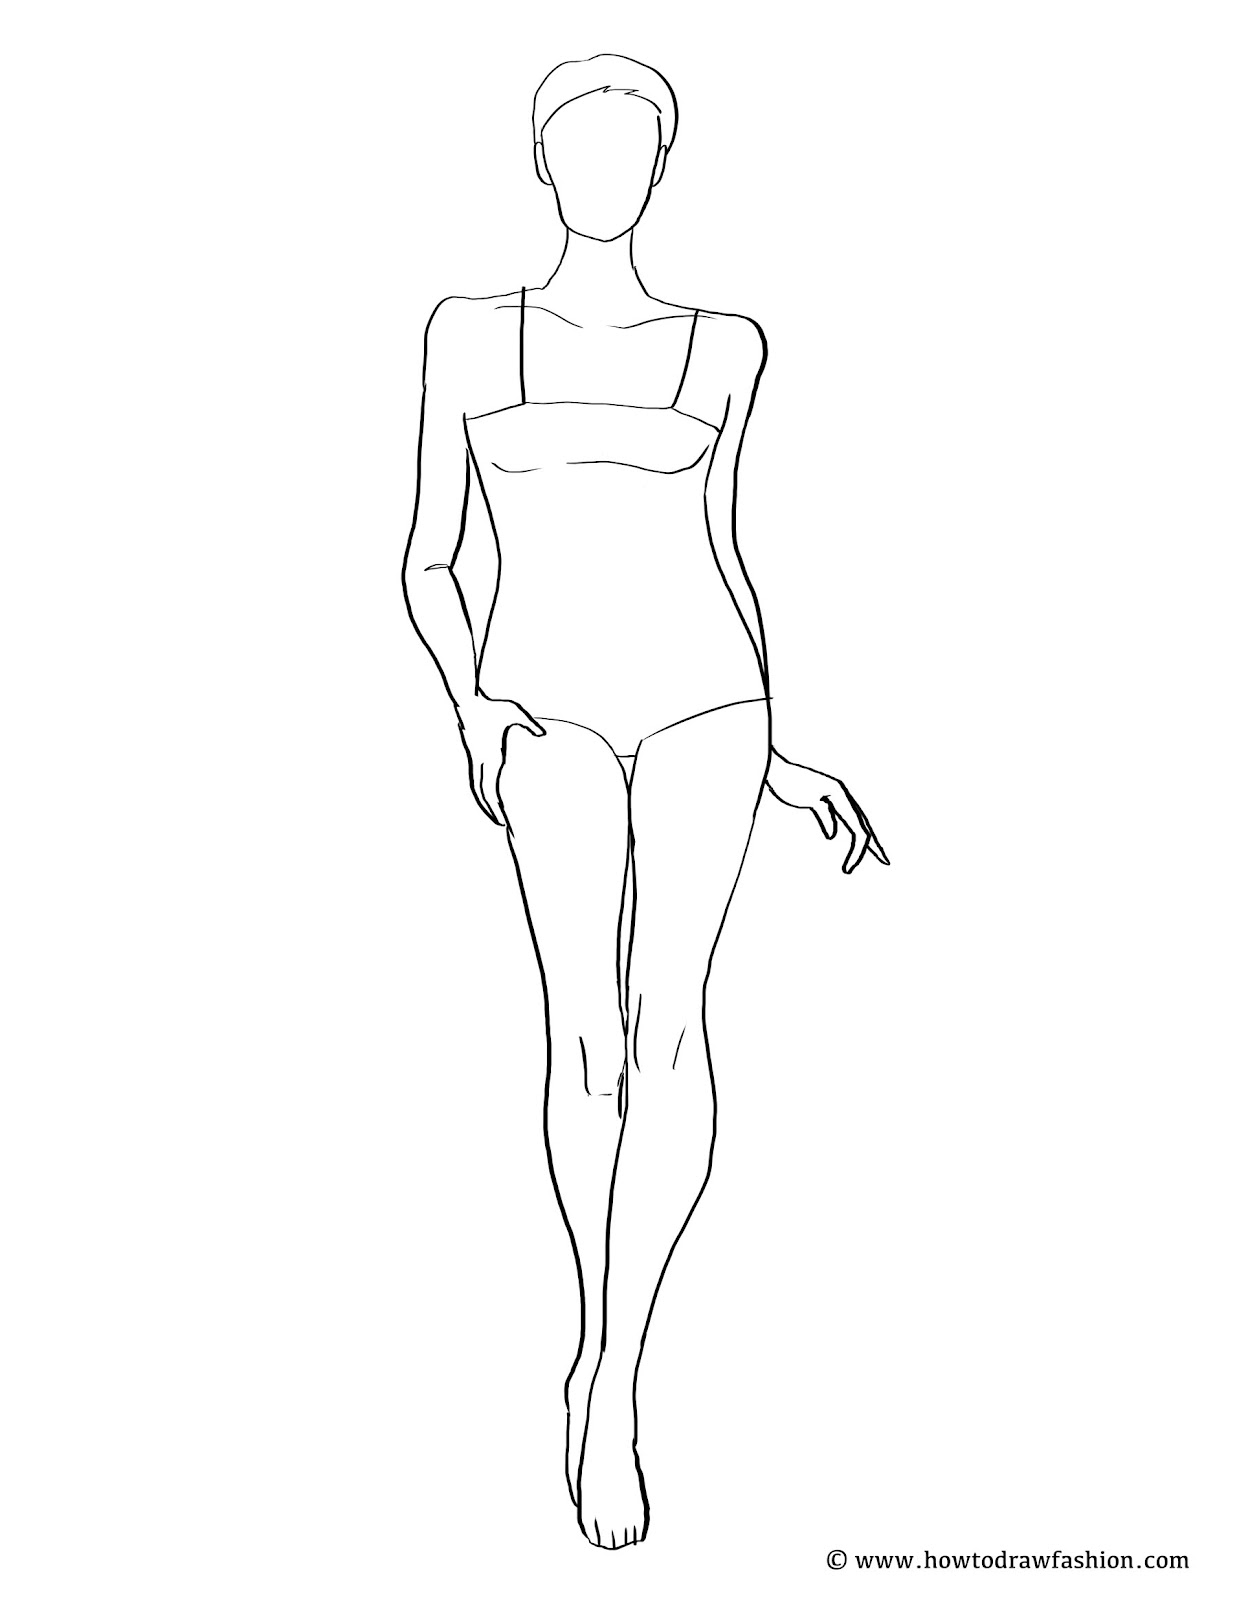 How To Draw Fashion: FREE Fashion Template Tuesday!